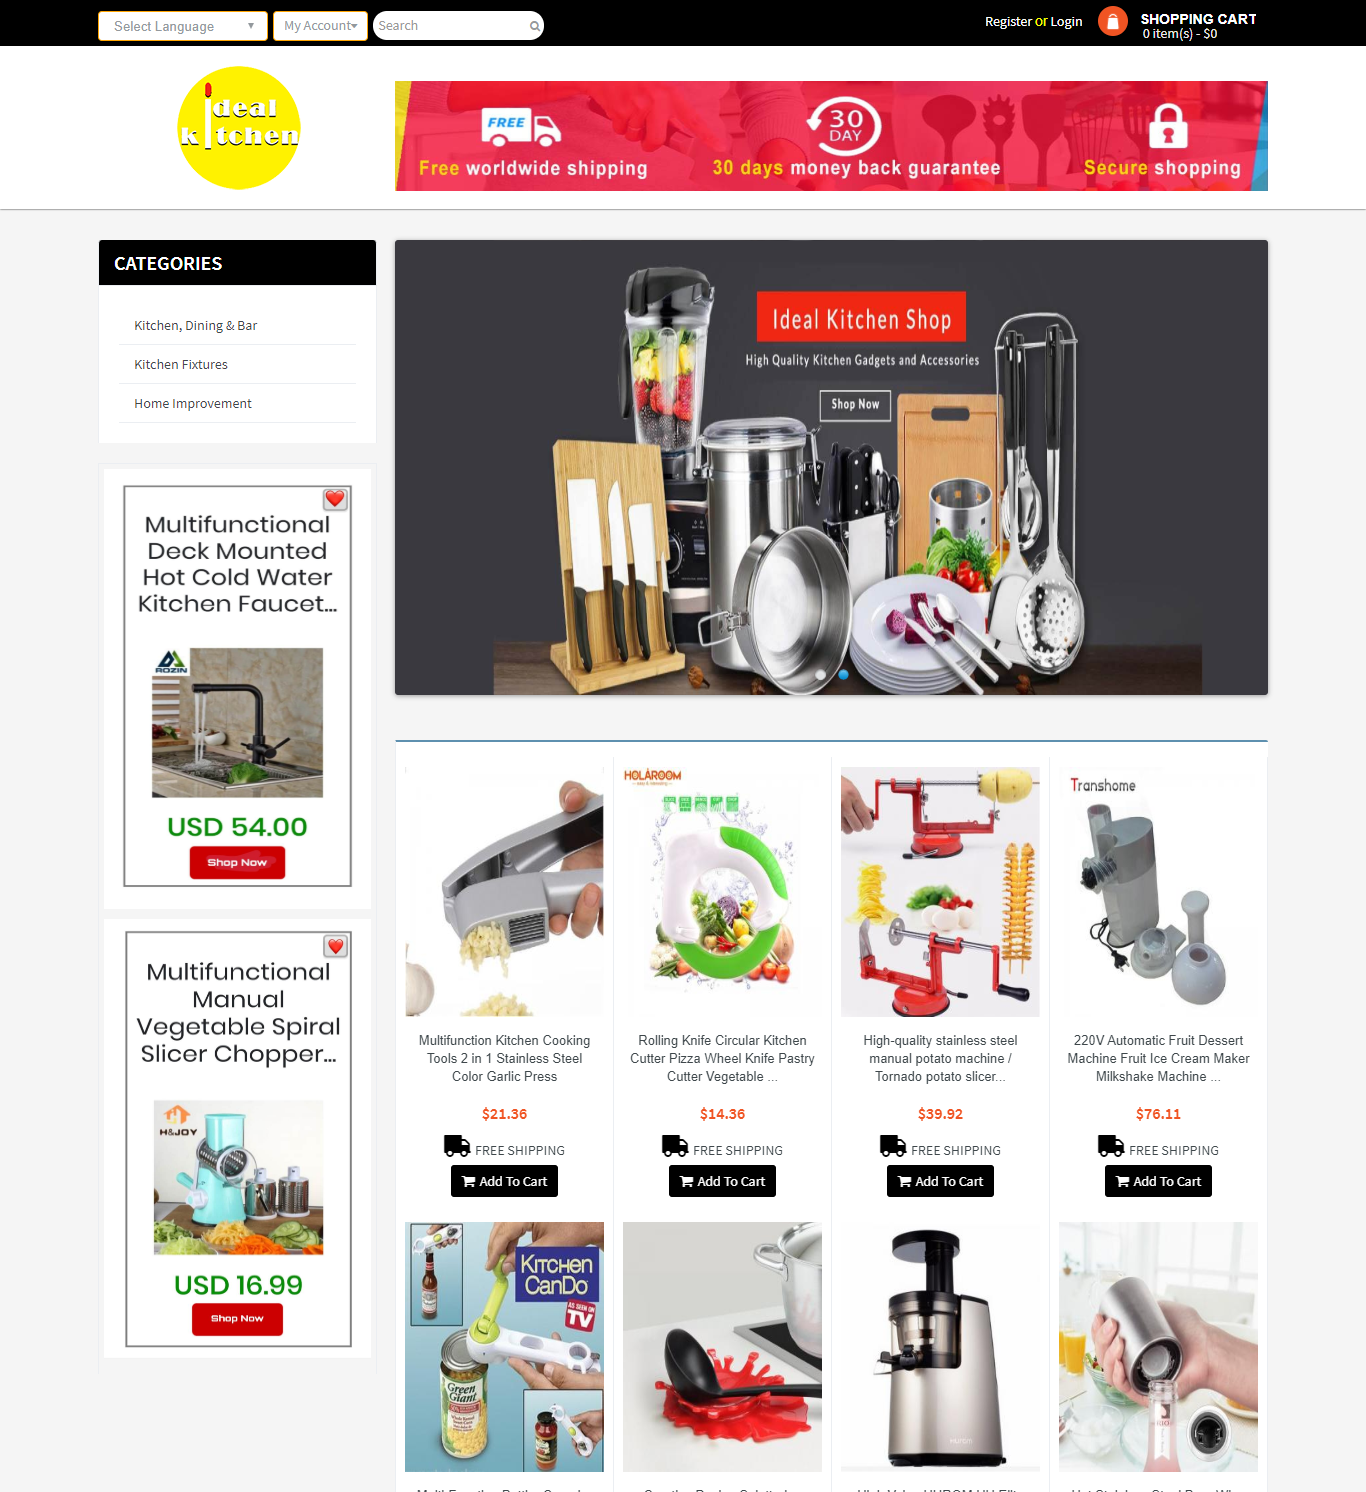 Fully Automated Dropshipping Website With 8000 Products - Ready To Earn